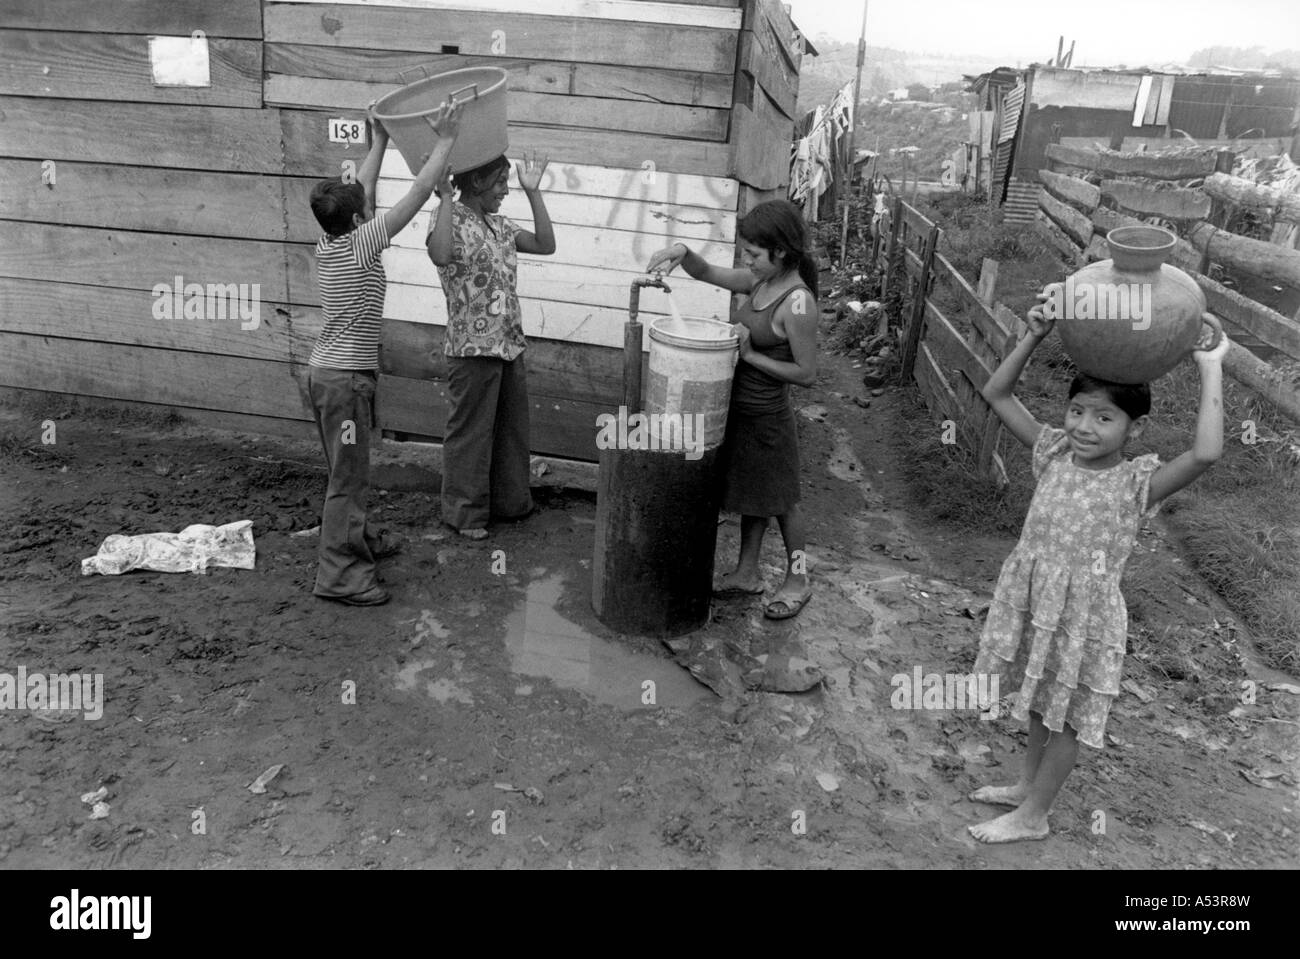 Painet ha1822 360 black and white water collecting faucet children slum guatemala city country developing nation - Stock Image